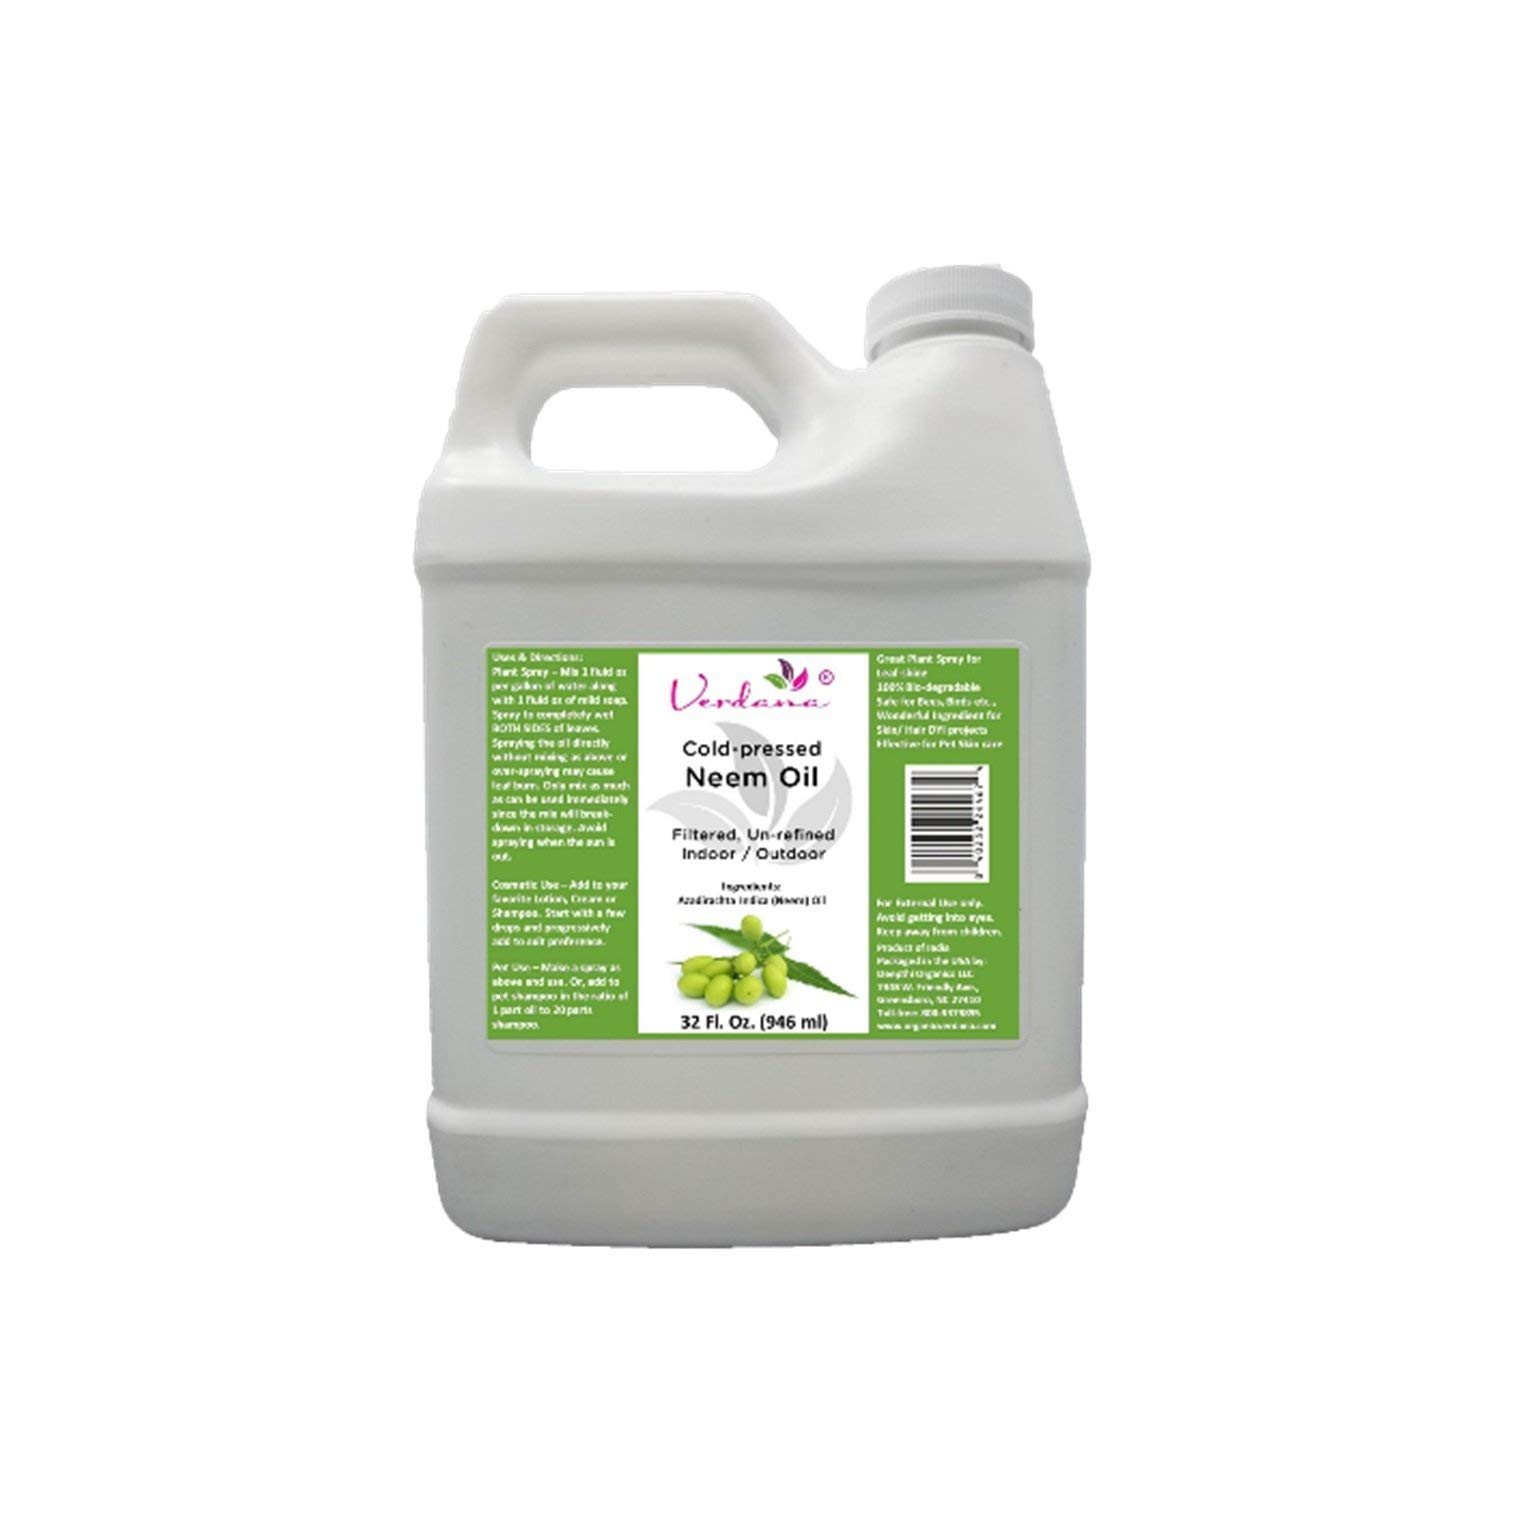 Verdana Cold Pressed Neem Oil 32 Fl. Oz - Unrefined, Filtered - High Azadirachtin Content - 100% Neem Oil, Nothing Added or Removed - Indoor/Outdoor Leafshine, Pet Care, Skin Care, Hair Care by Verdana